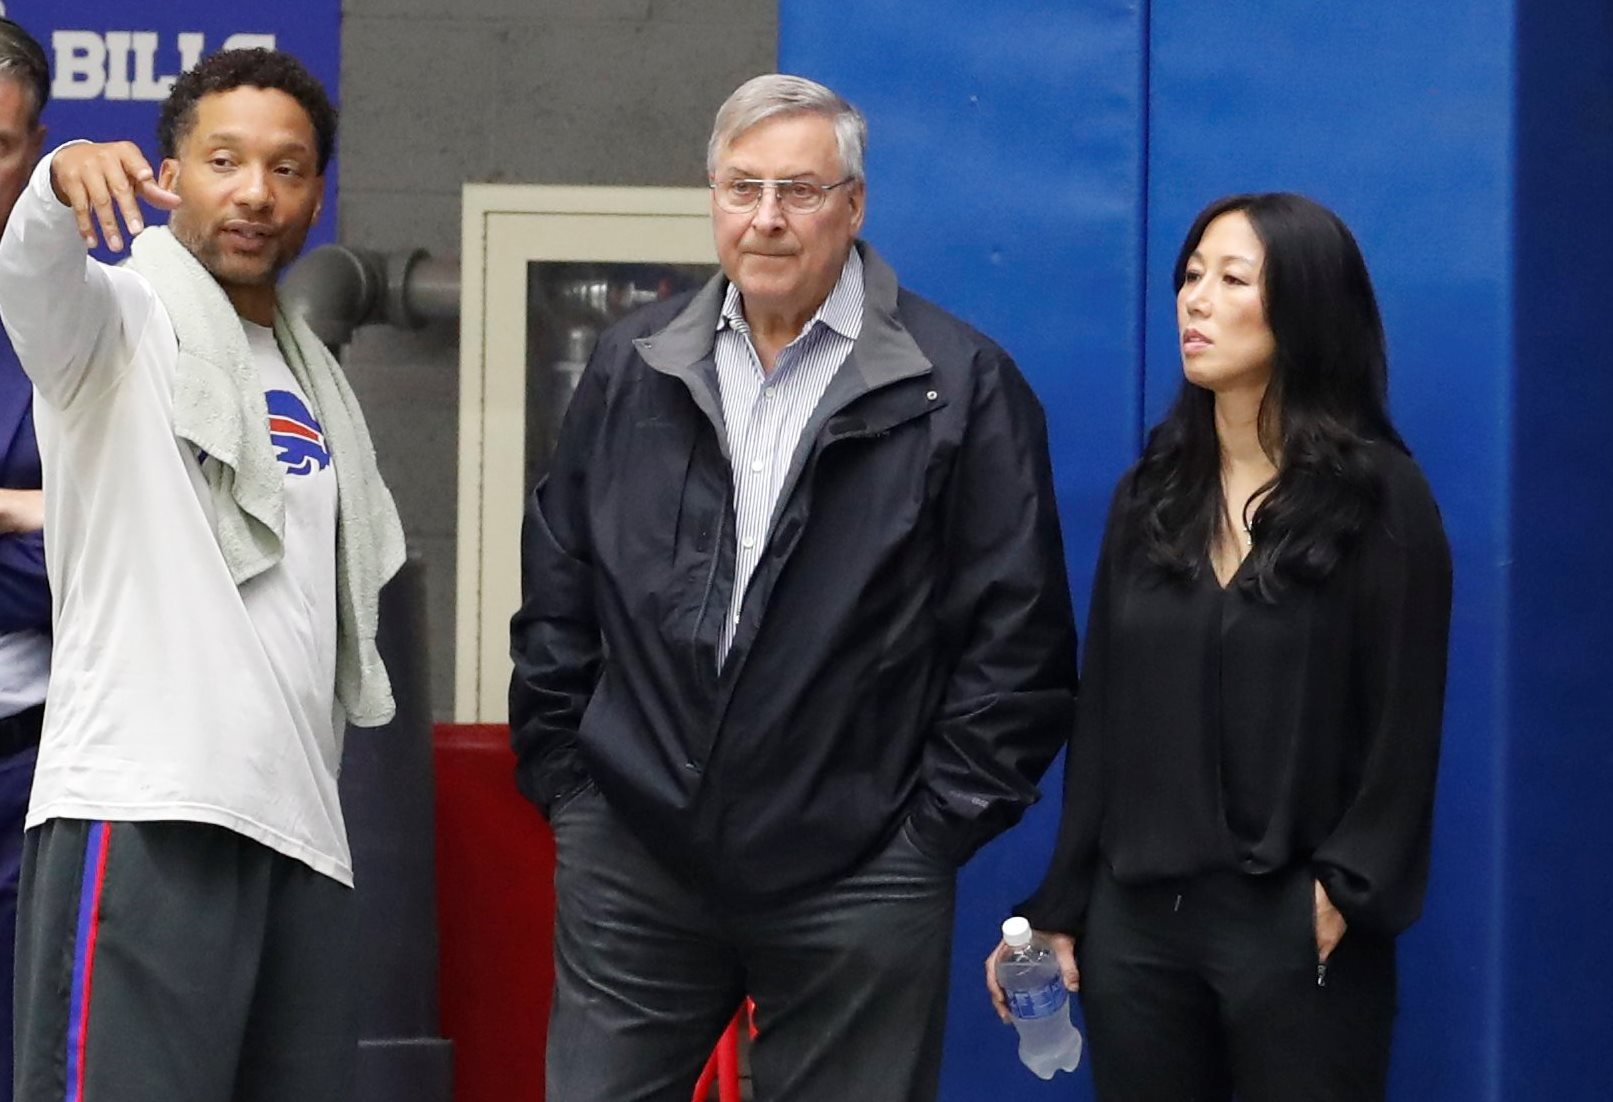 Bills GM Doug Whaley speaks with owners Terry and Kim Pegula during practice on Thursday, April 20, 2017. (Harry Scull Jr./Buffalo News)